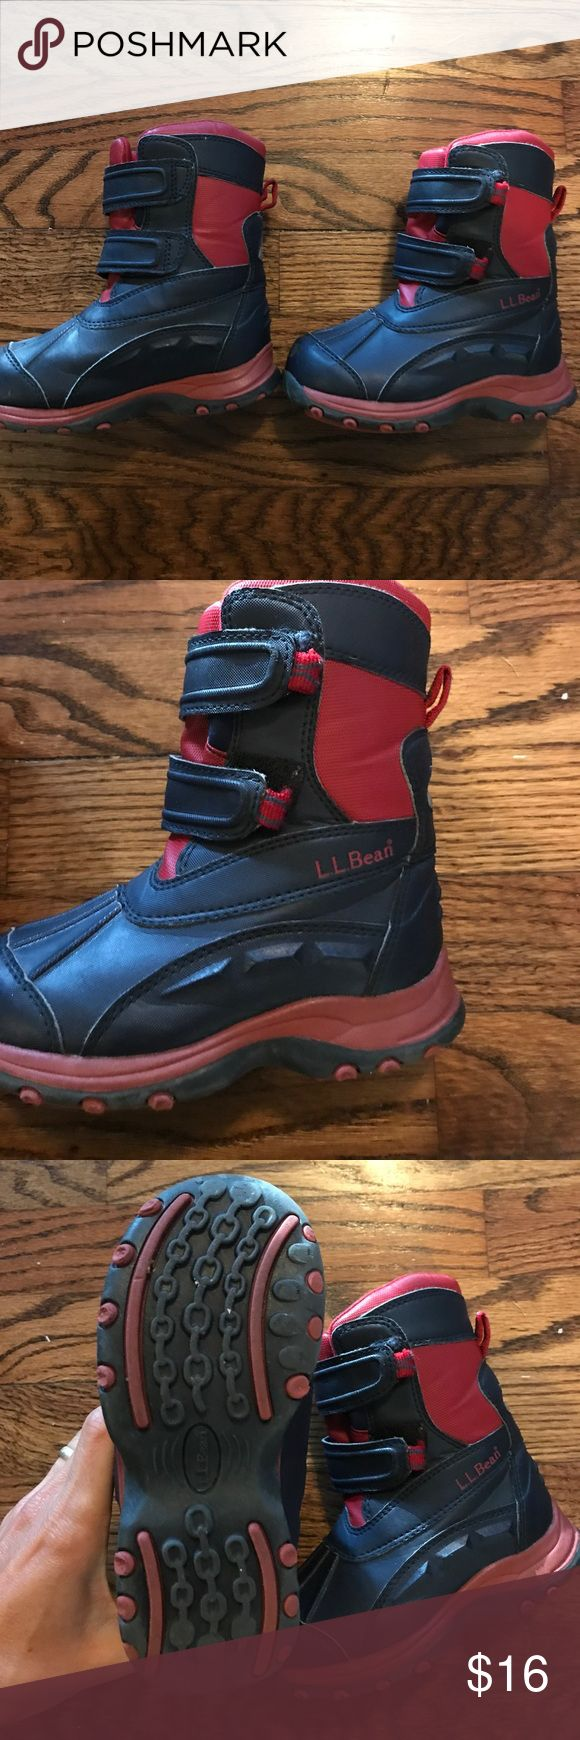 L.L. Bean Boots Perfect for the rain, cold and hiking in the mud.  Great gently used condition L.L. Bean Shoes Boots